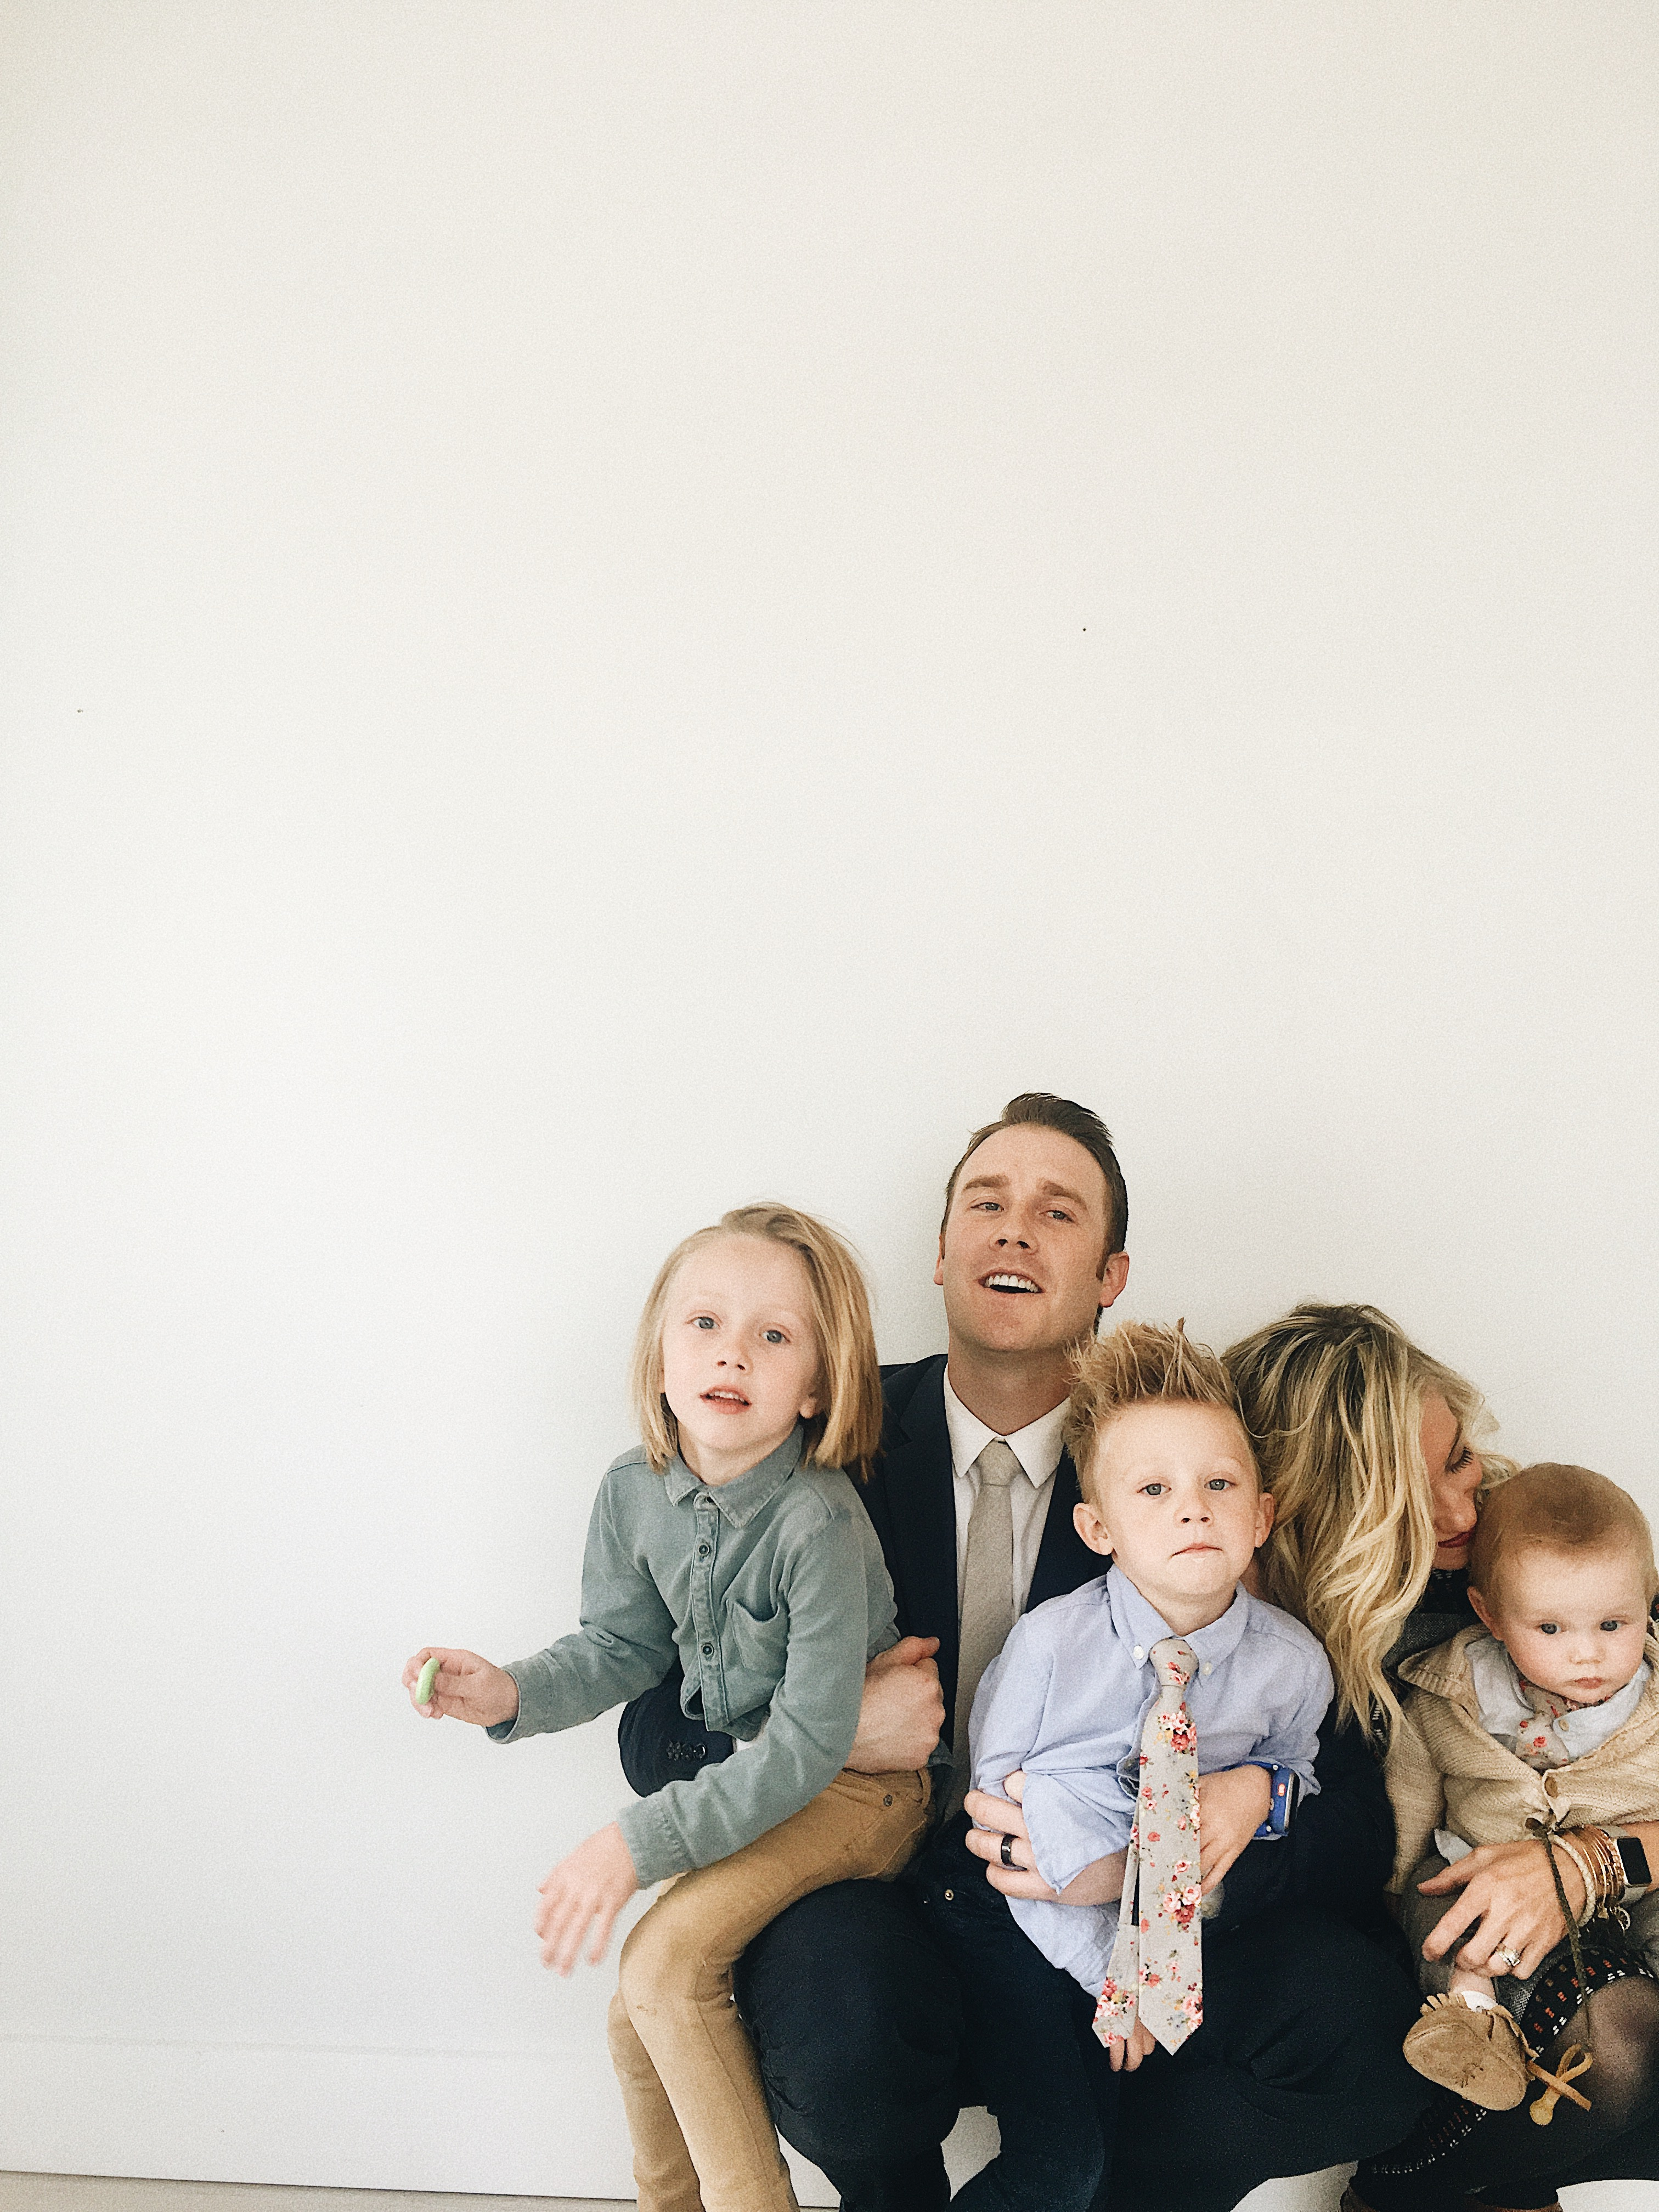 The Perfect Family SUNDAY by lifestyle blogger Ginger of parrish place